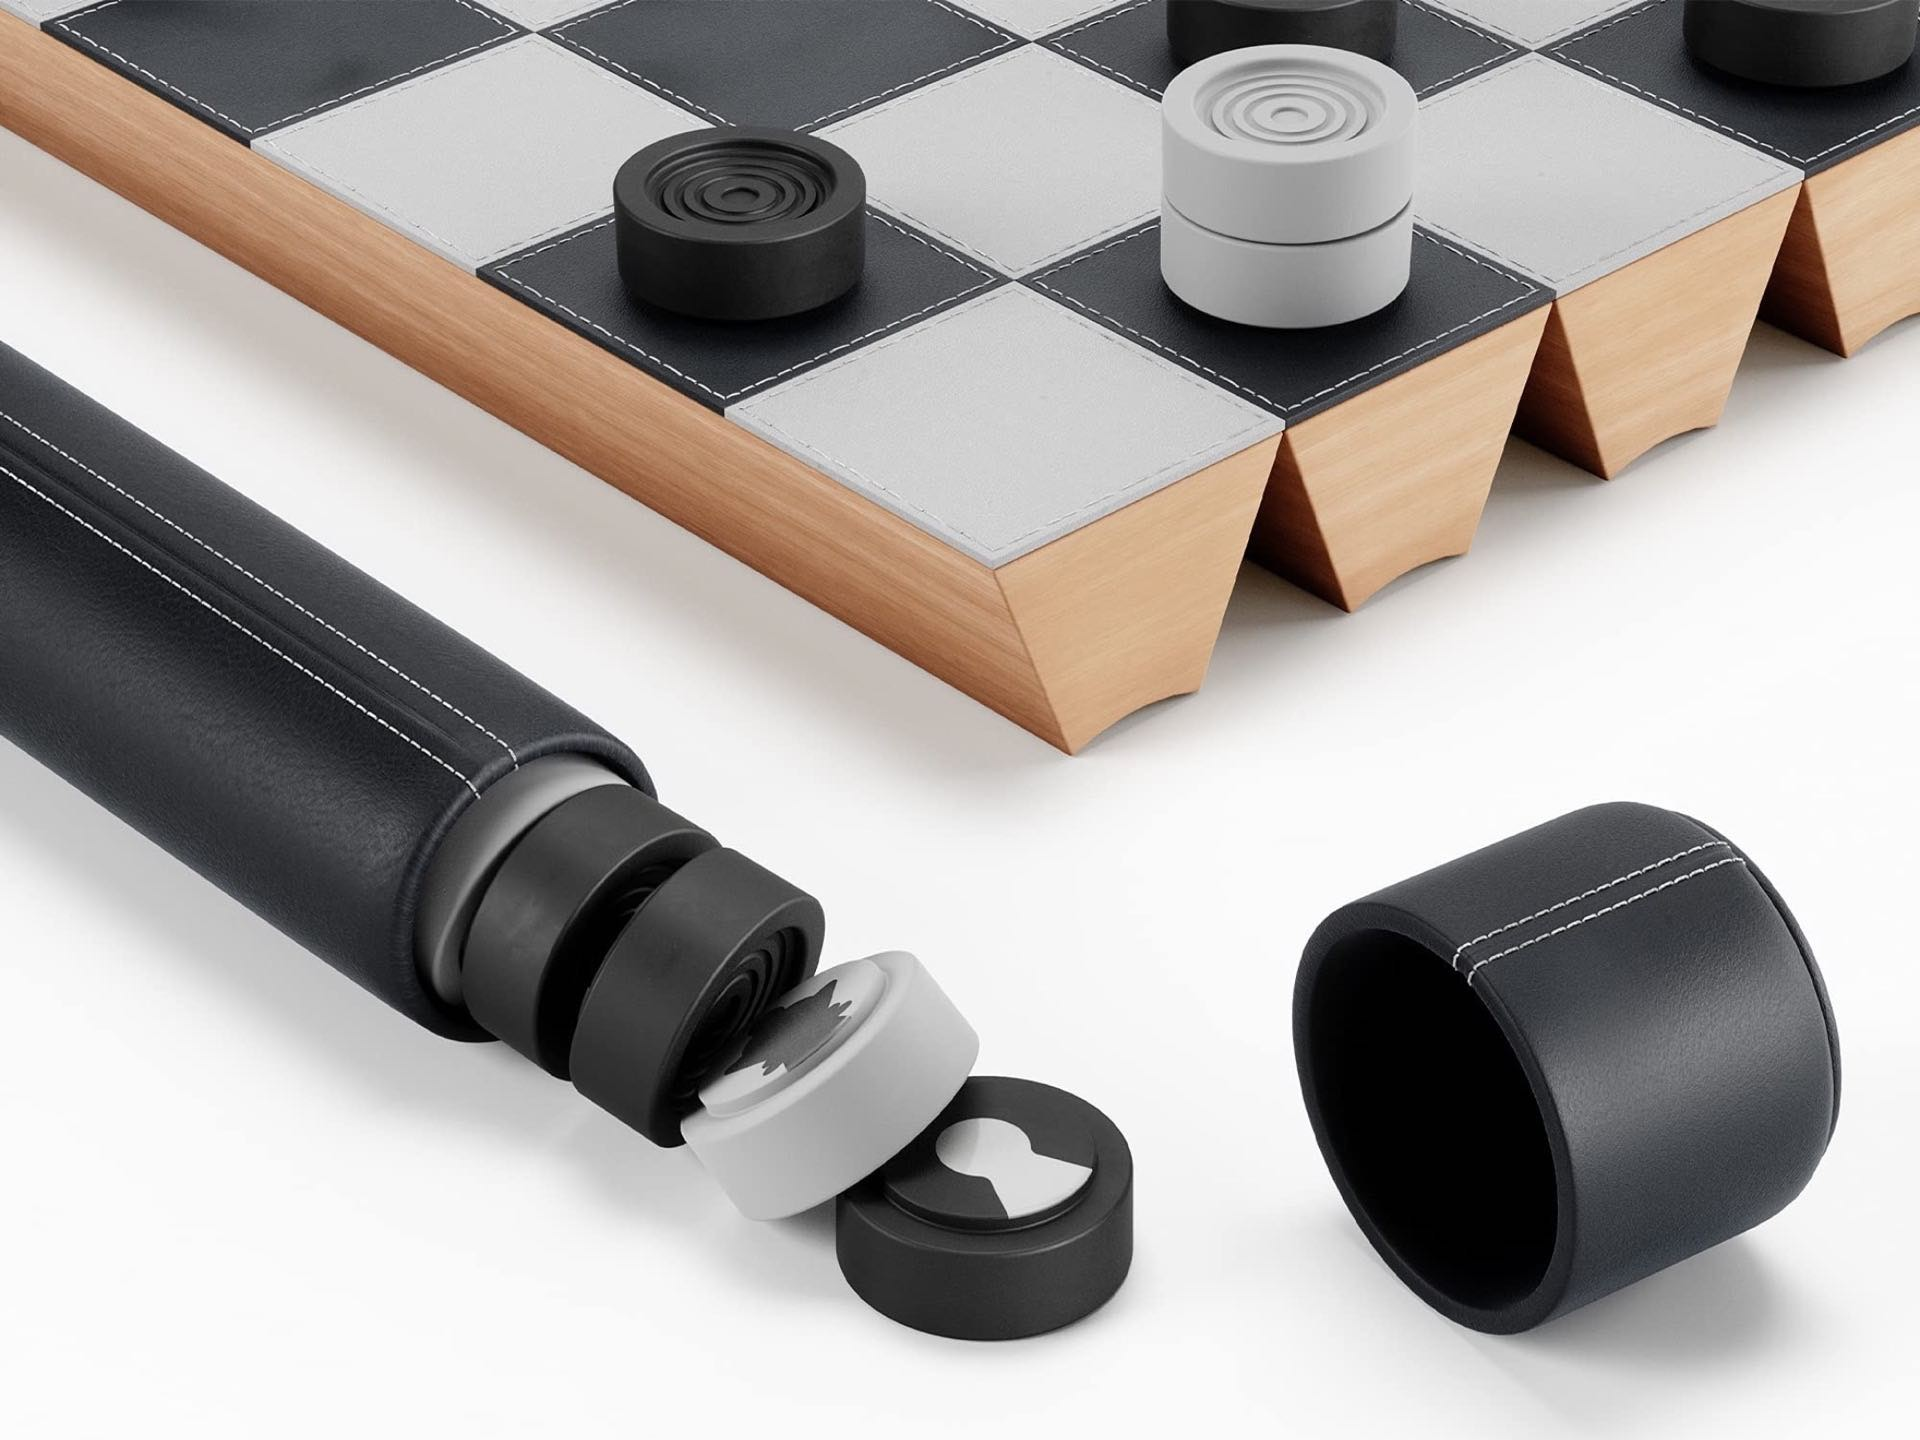 umbra-rolz-roll-up-chess-checkers-set-2